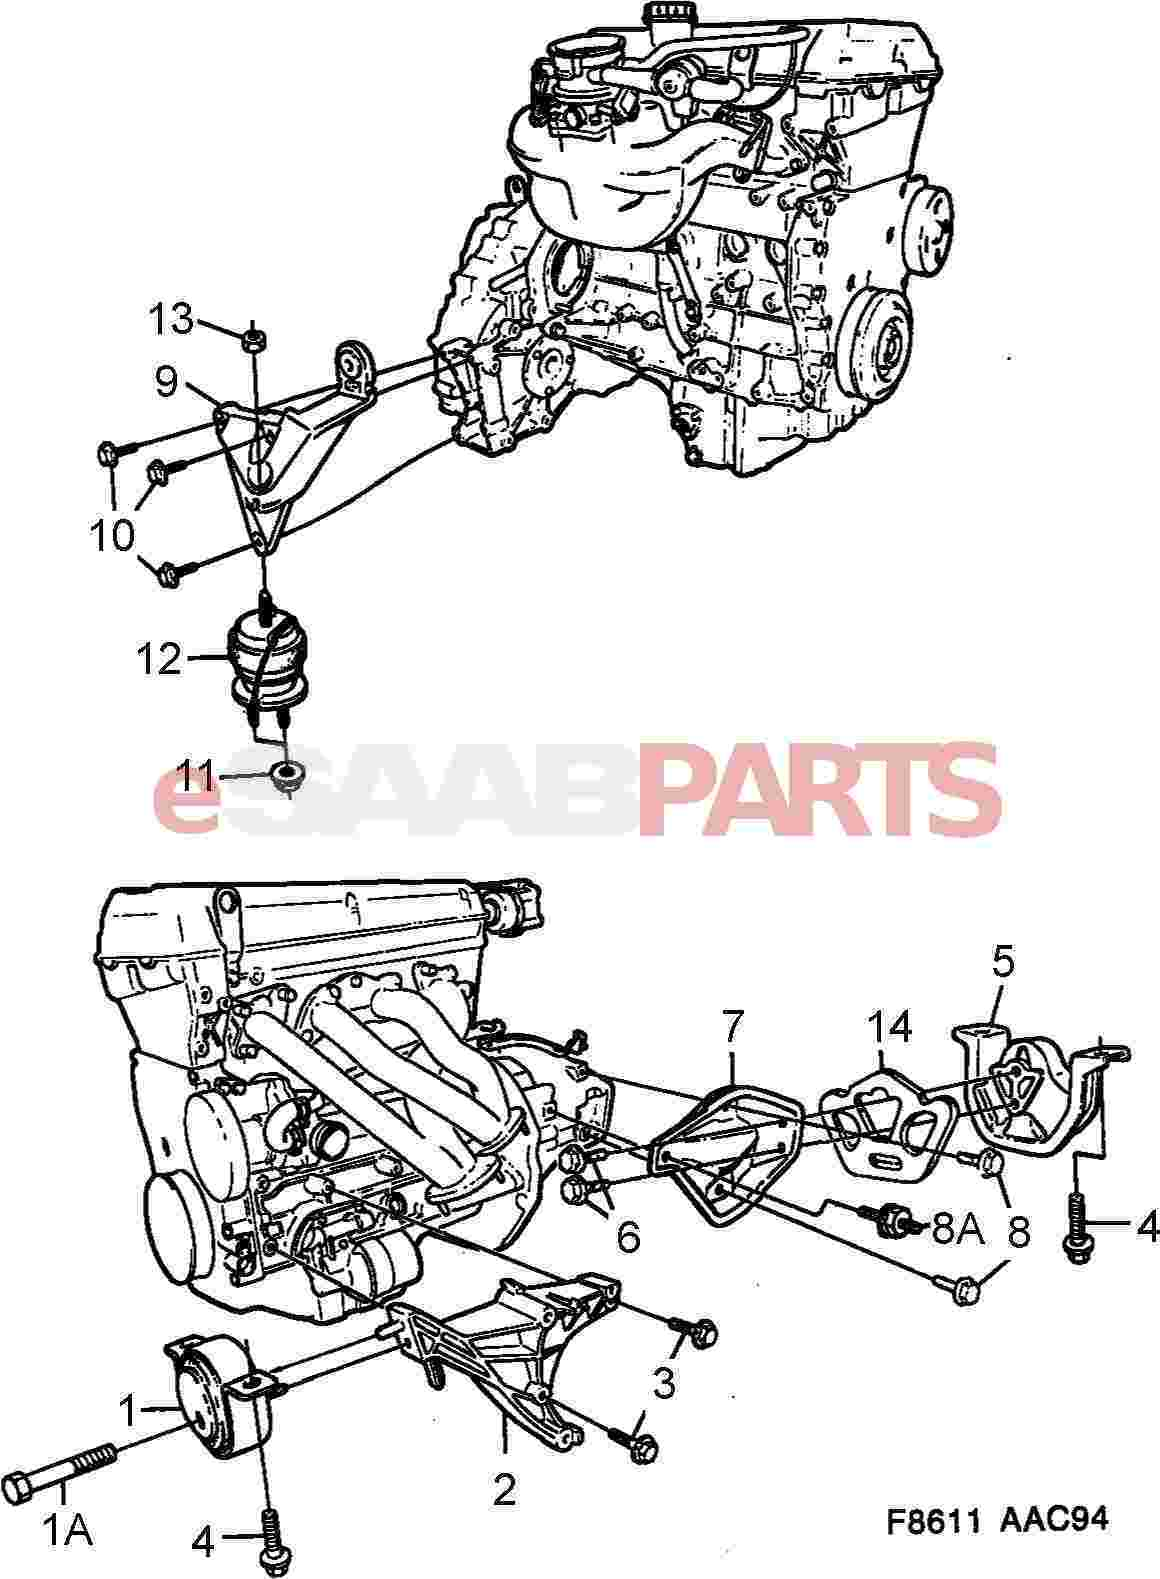 32017994 saab engine mount front rh 9 3og 4cyl 900ng 6 cyl rh esaabparts com Saab 900 Engine Diagram Automatic Transmission Parts Diagram 99 Saab 9 5